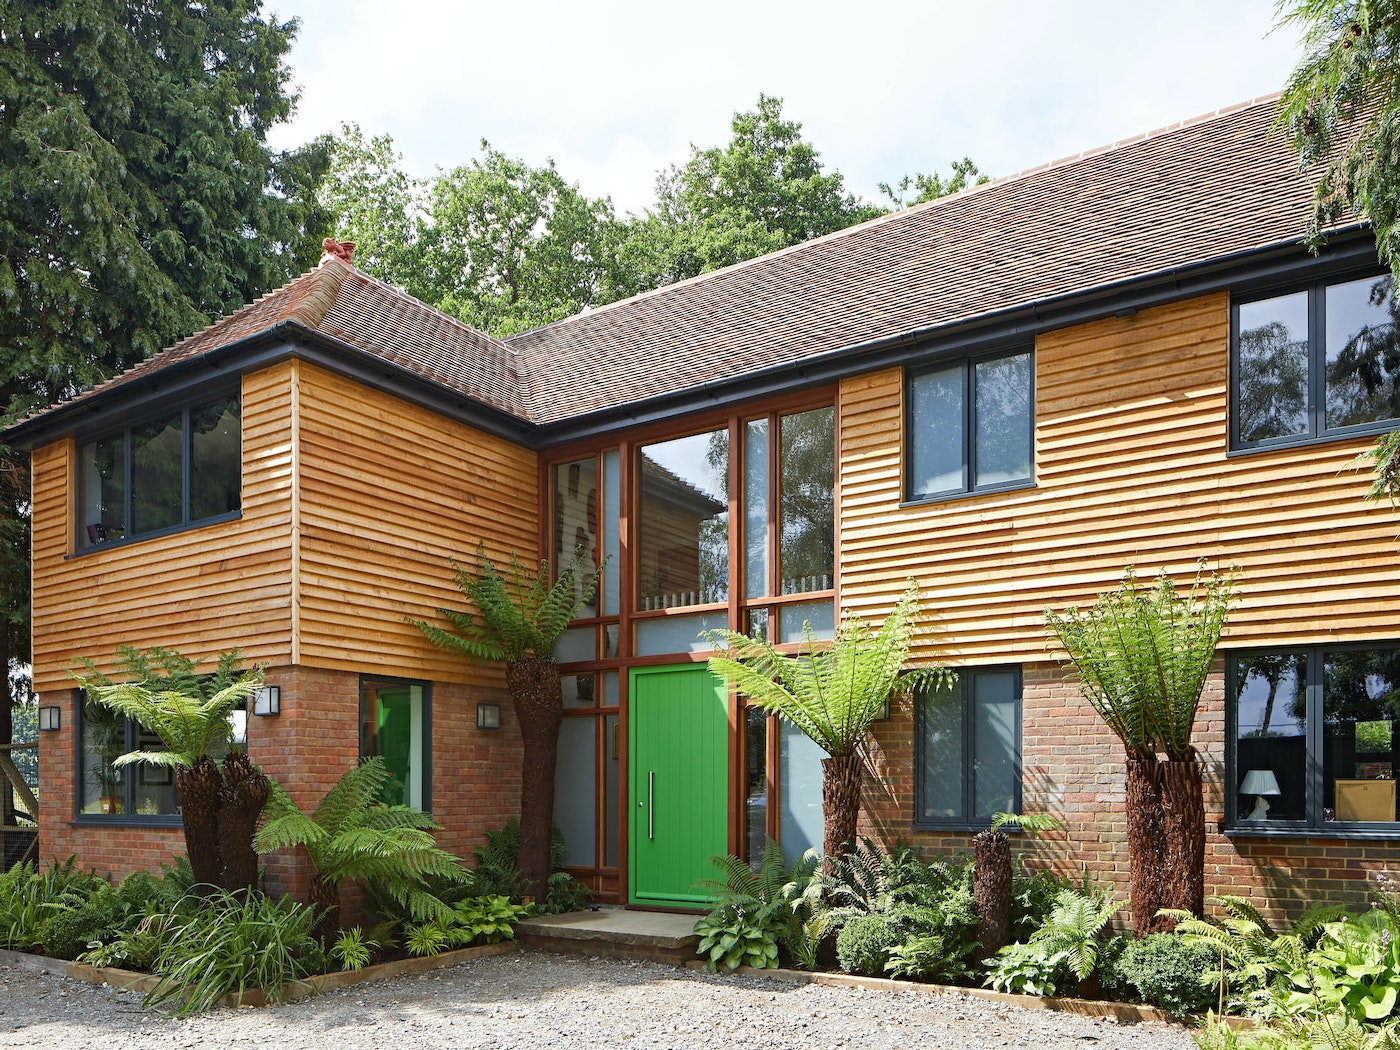 With more neutral cladding and brick tones, this bold green door adds a touch of the tropical to this beautiful property